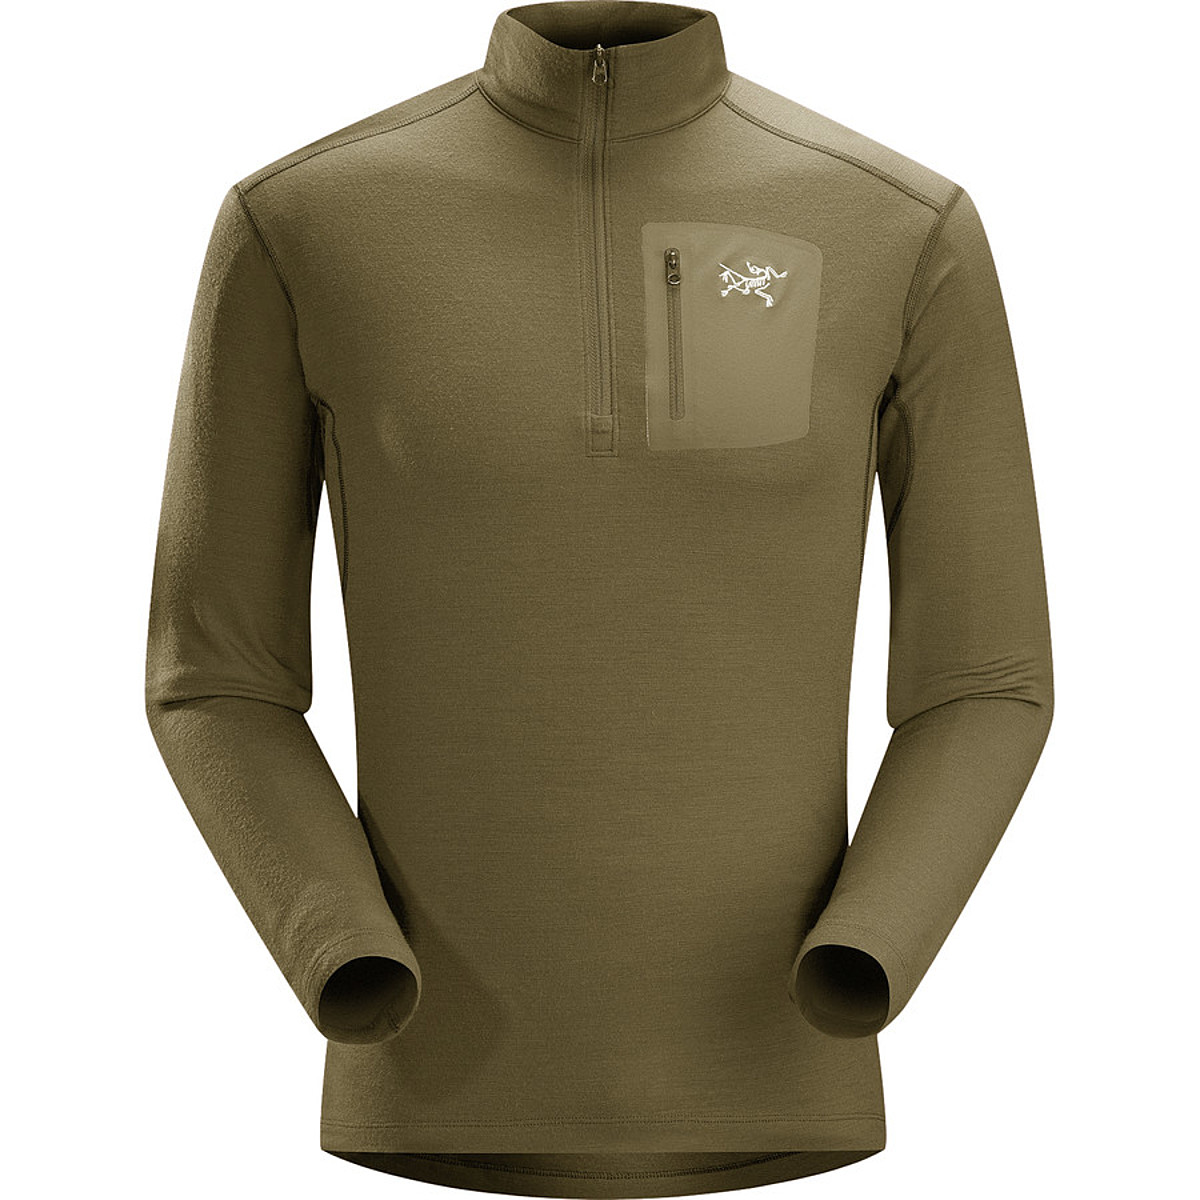 photo: Arc'teryx Men's Rho LTW Zip base layer top